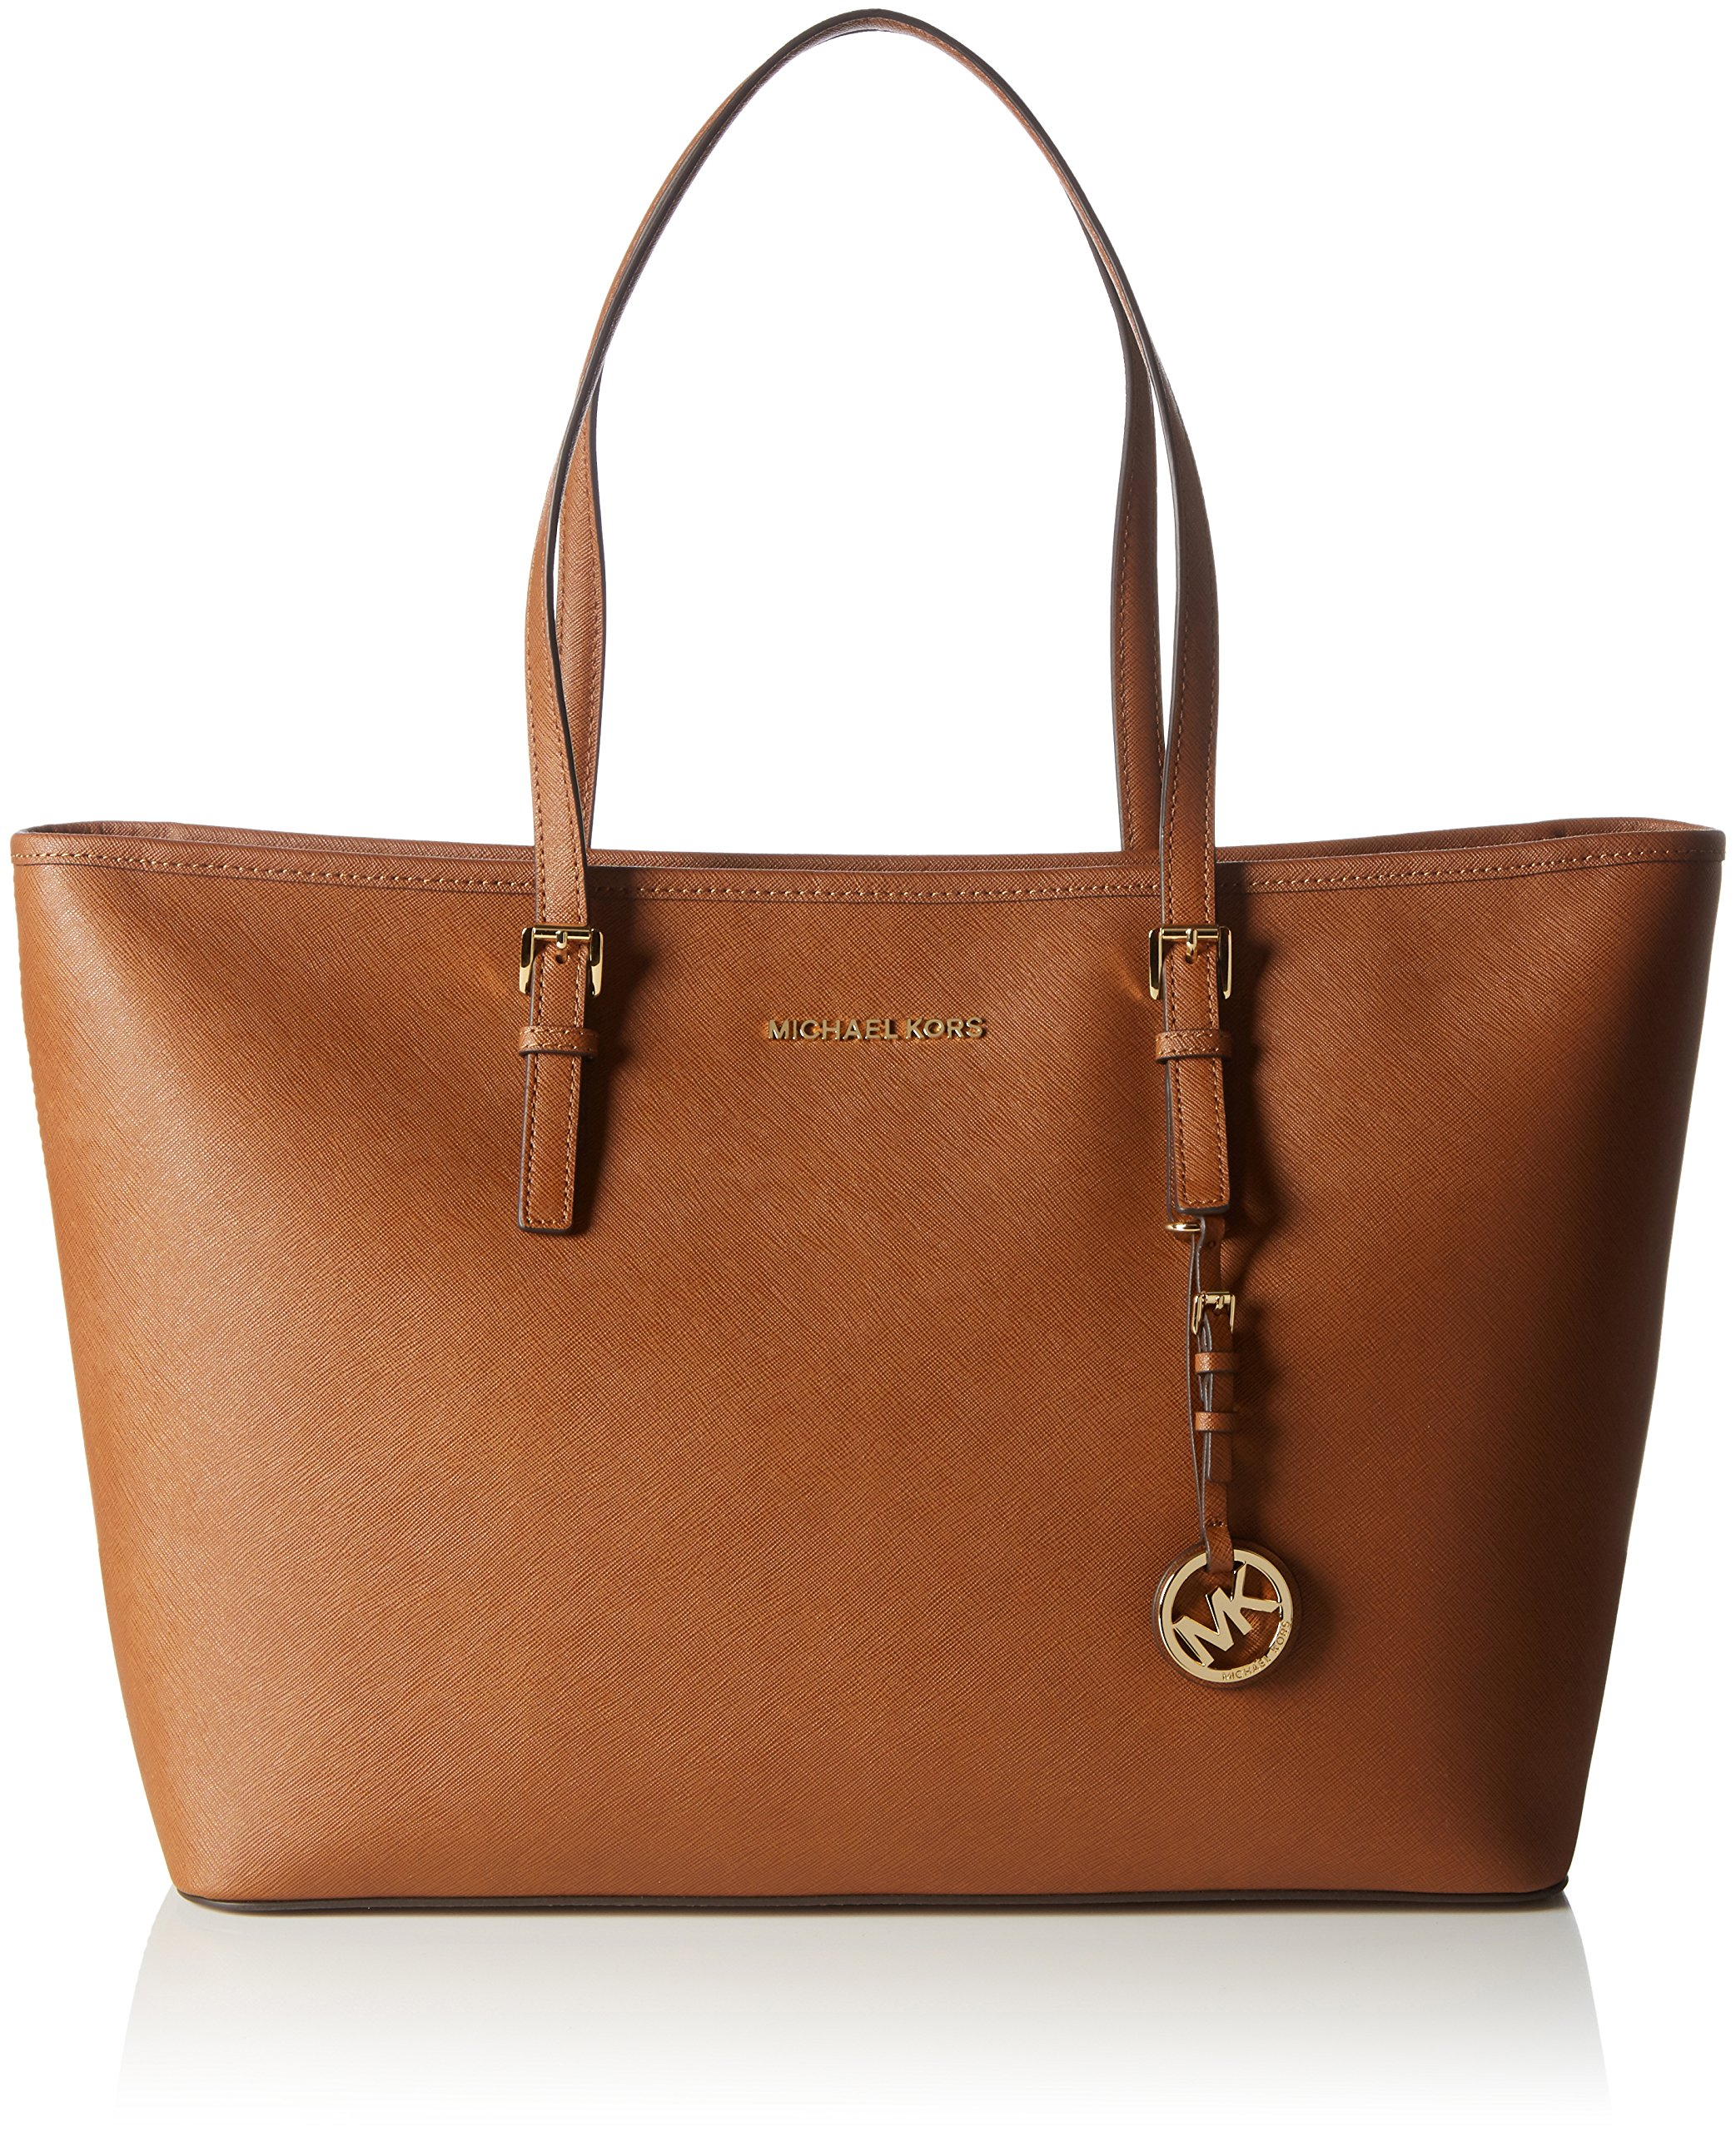 4401de6801 MICHAEL Michael Kors Jet Set Travel Medium Saffiano Leather Top-Zip ...